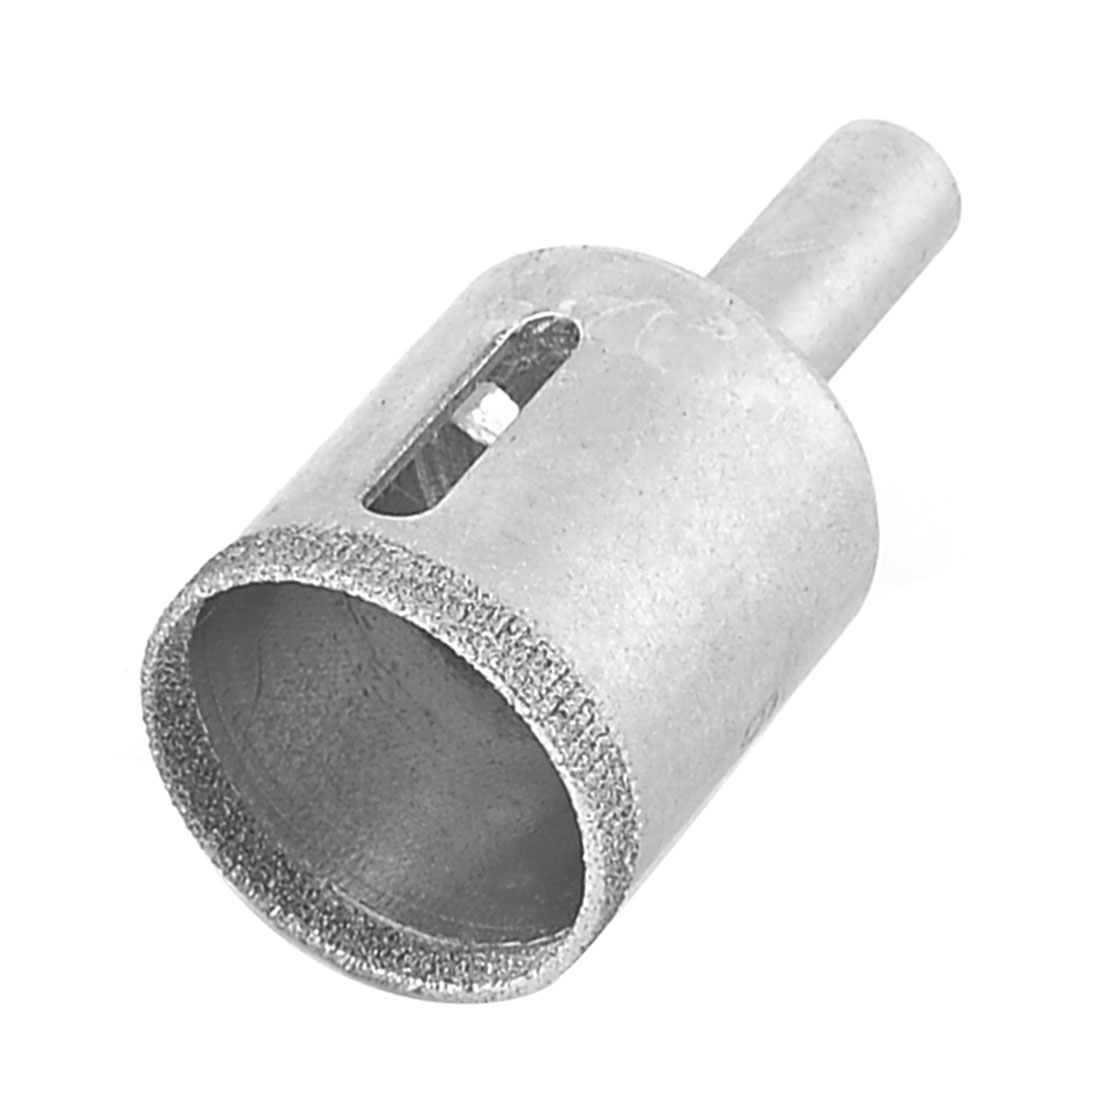 Round Shank 26mm Dia Glass Tile Ceramic Hole Saw Drilling Tool